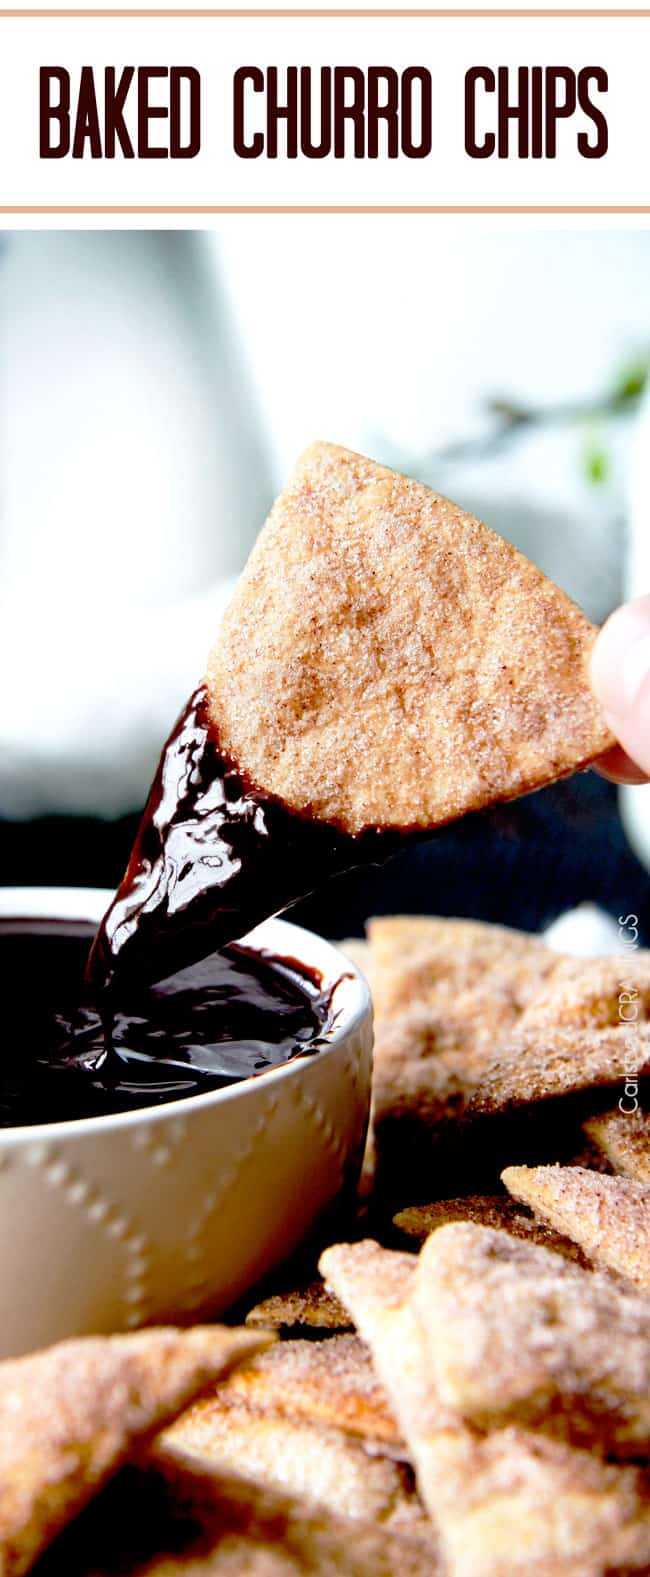 Cinnamon Crisps dipped in a chocolate sauce.